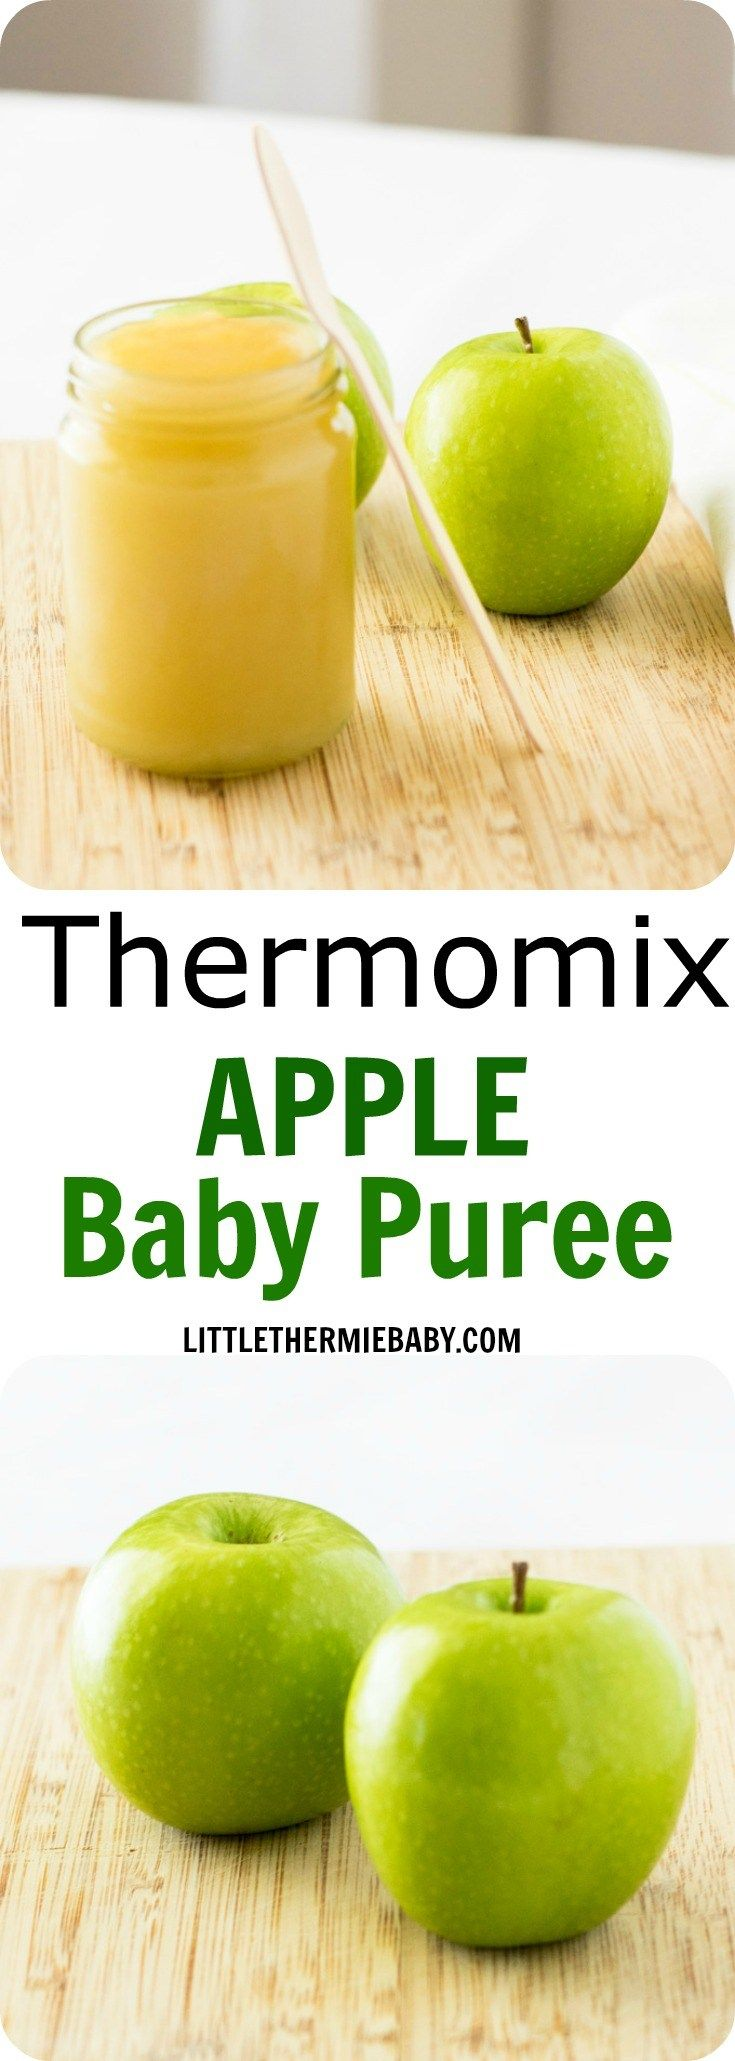 Thermomix Apple Baby Puree - Gorgeous, smooth, sweet apple puree in your Thermomix for your bub. They're naturally sweet and babies really love them. All 3 of my children loved apples as a first taste. And so quick and easy - it's great mixed with rice cereal or porridge. It will be a hit.